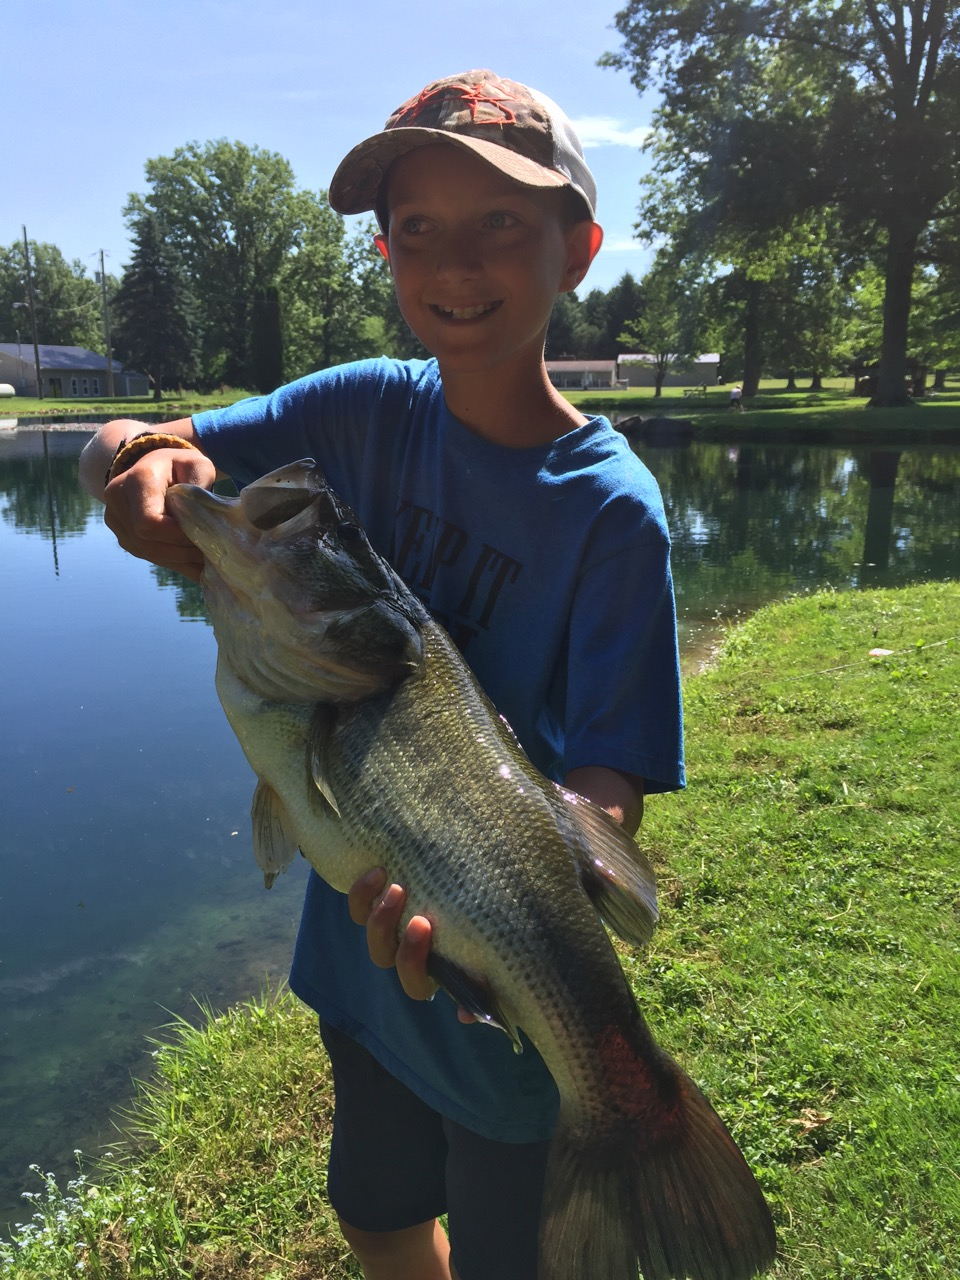 This guy who is just shy of 5 lbs was quite a catch for this camper!